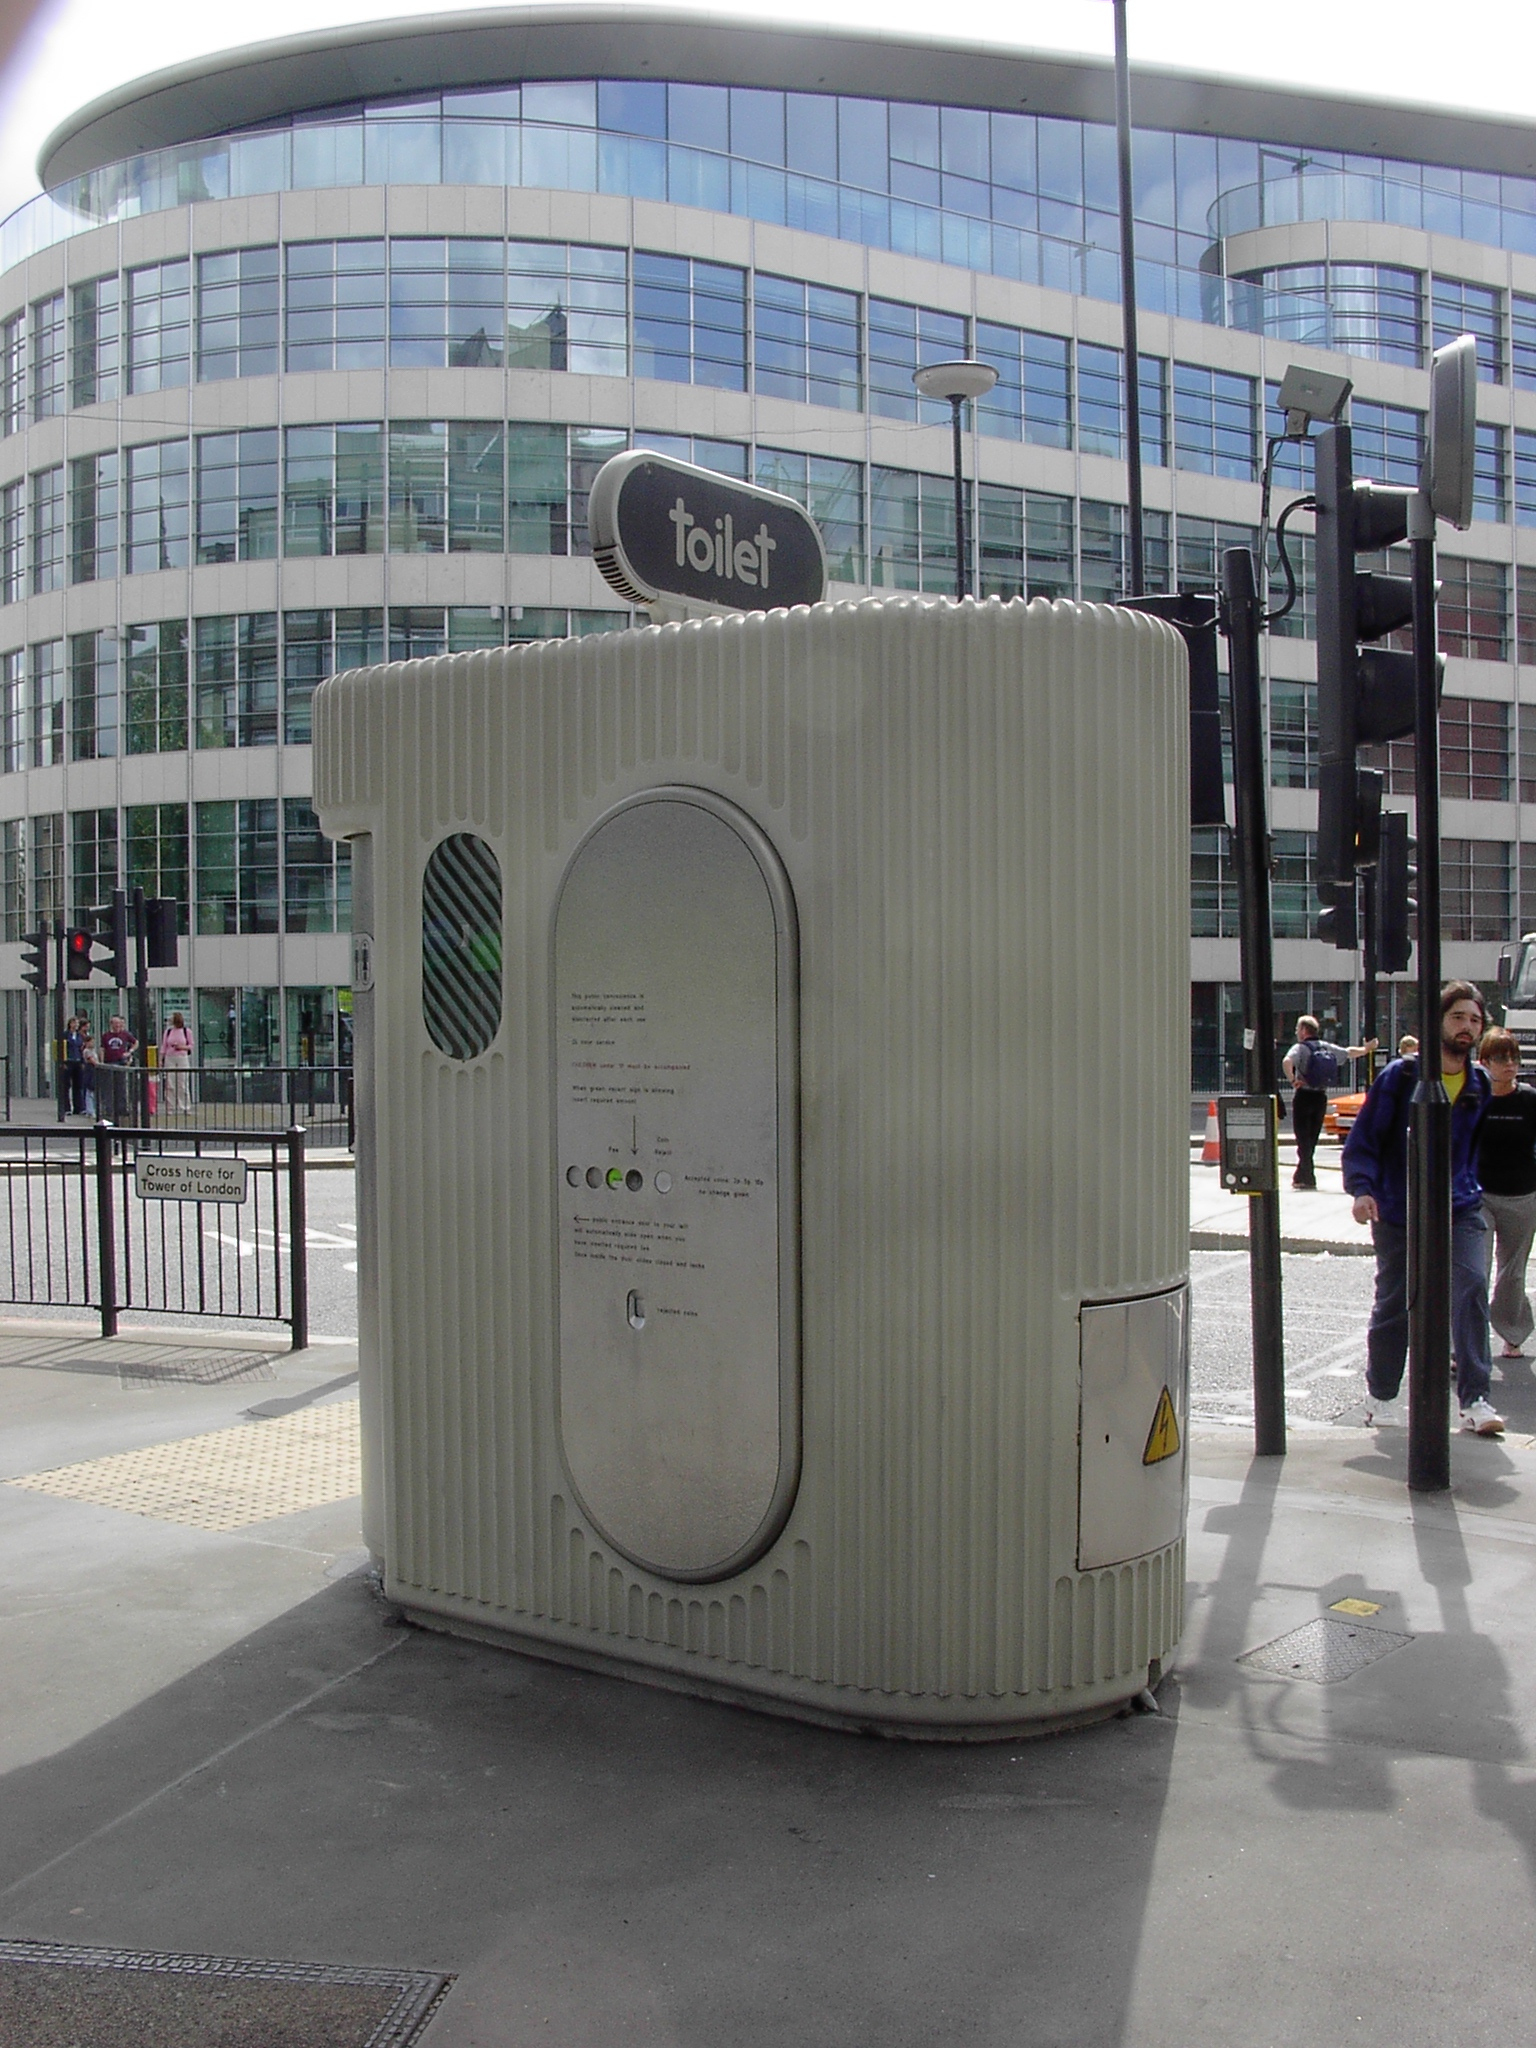 London – There And Back Again avec Toilettes Publics